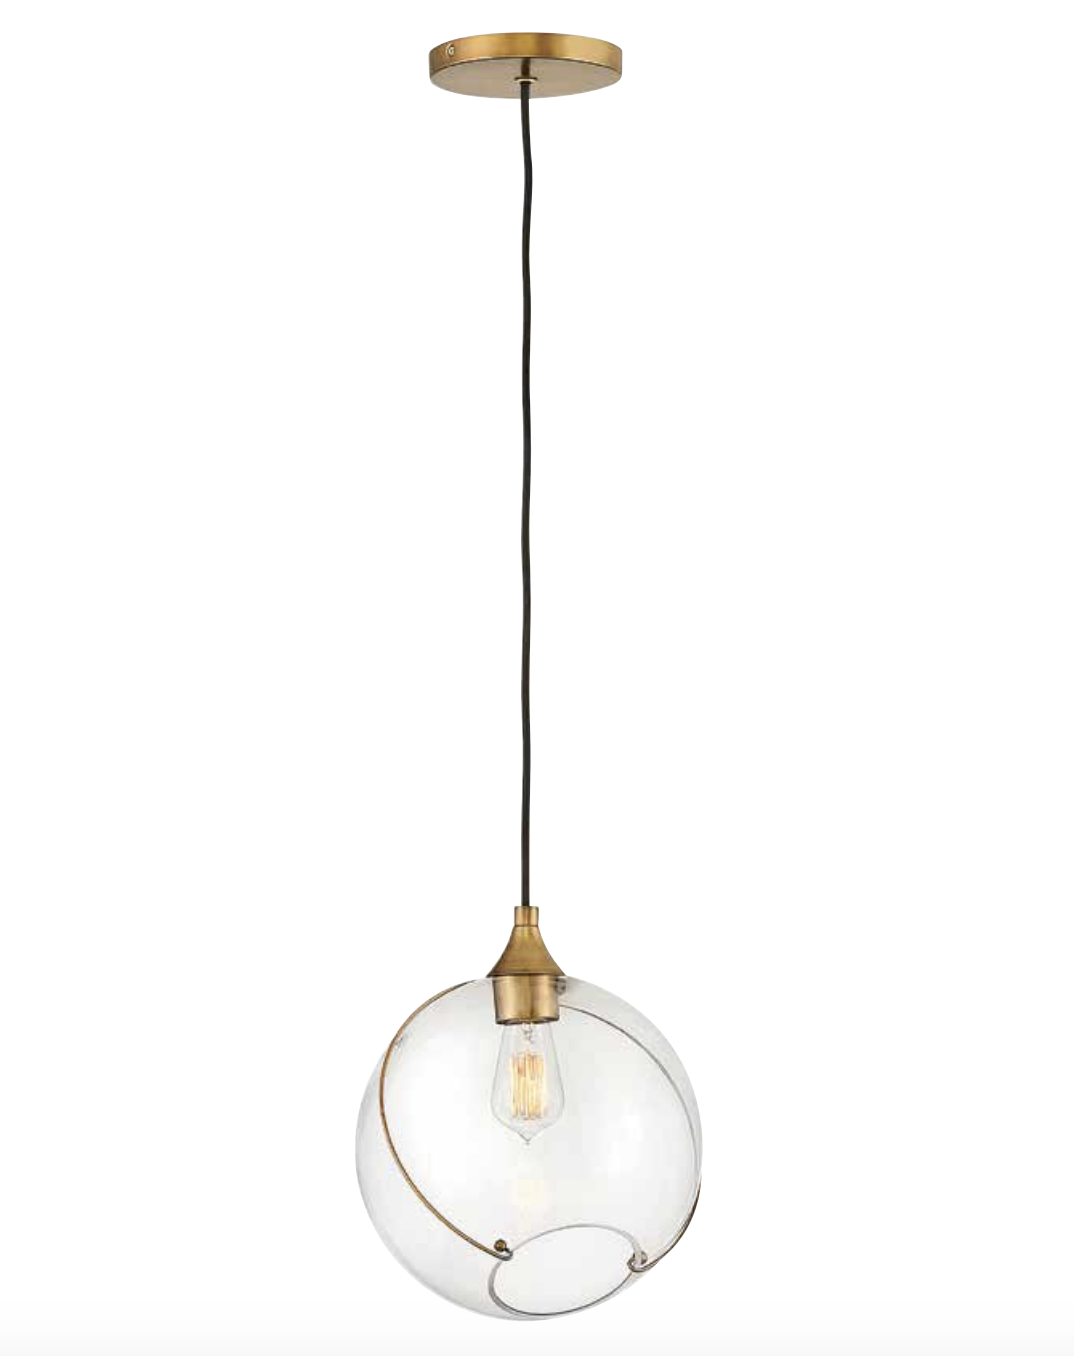 Asym Round Glass Brass Single Pendant - ID 10293